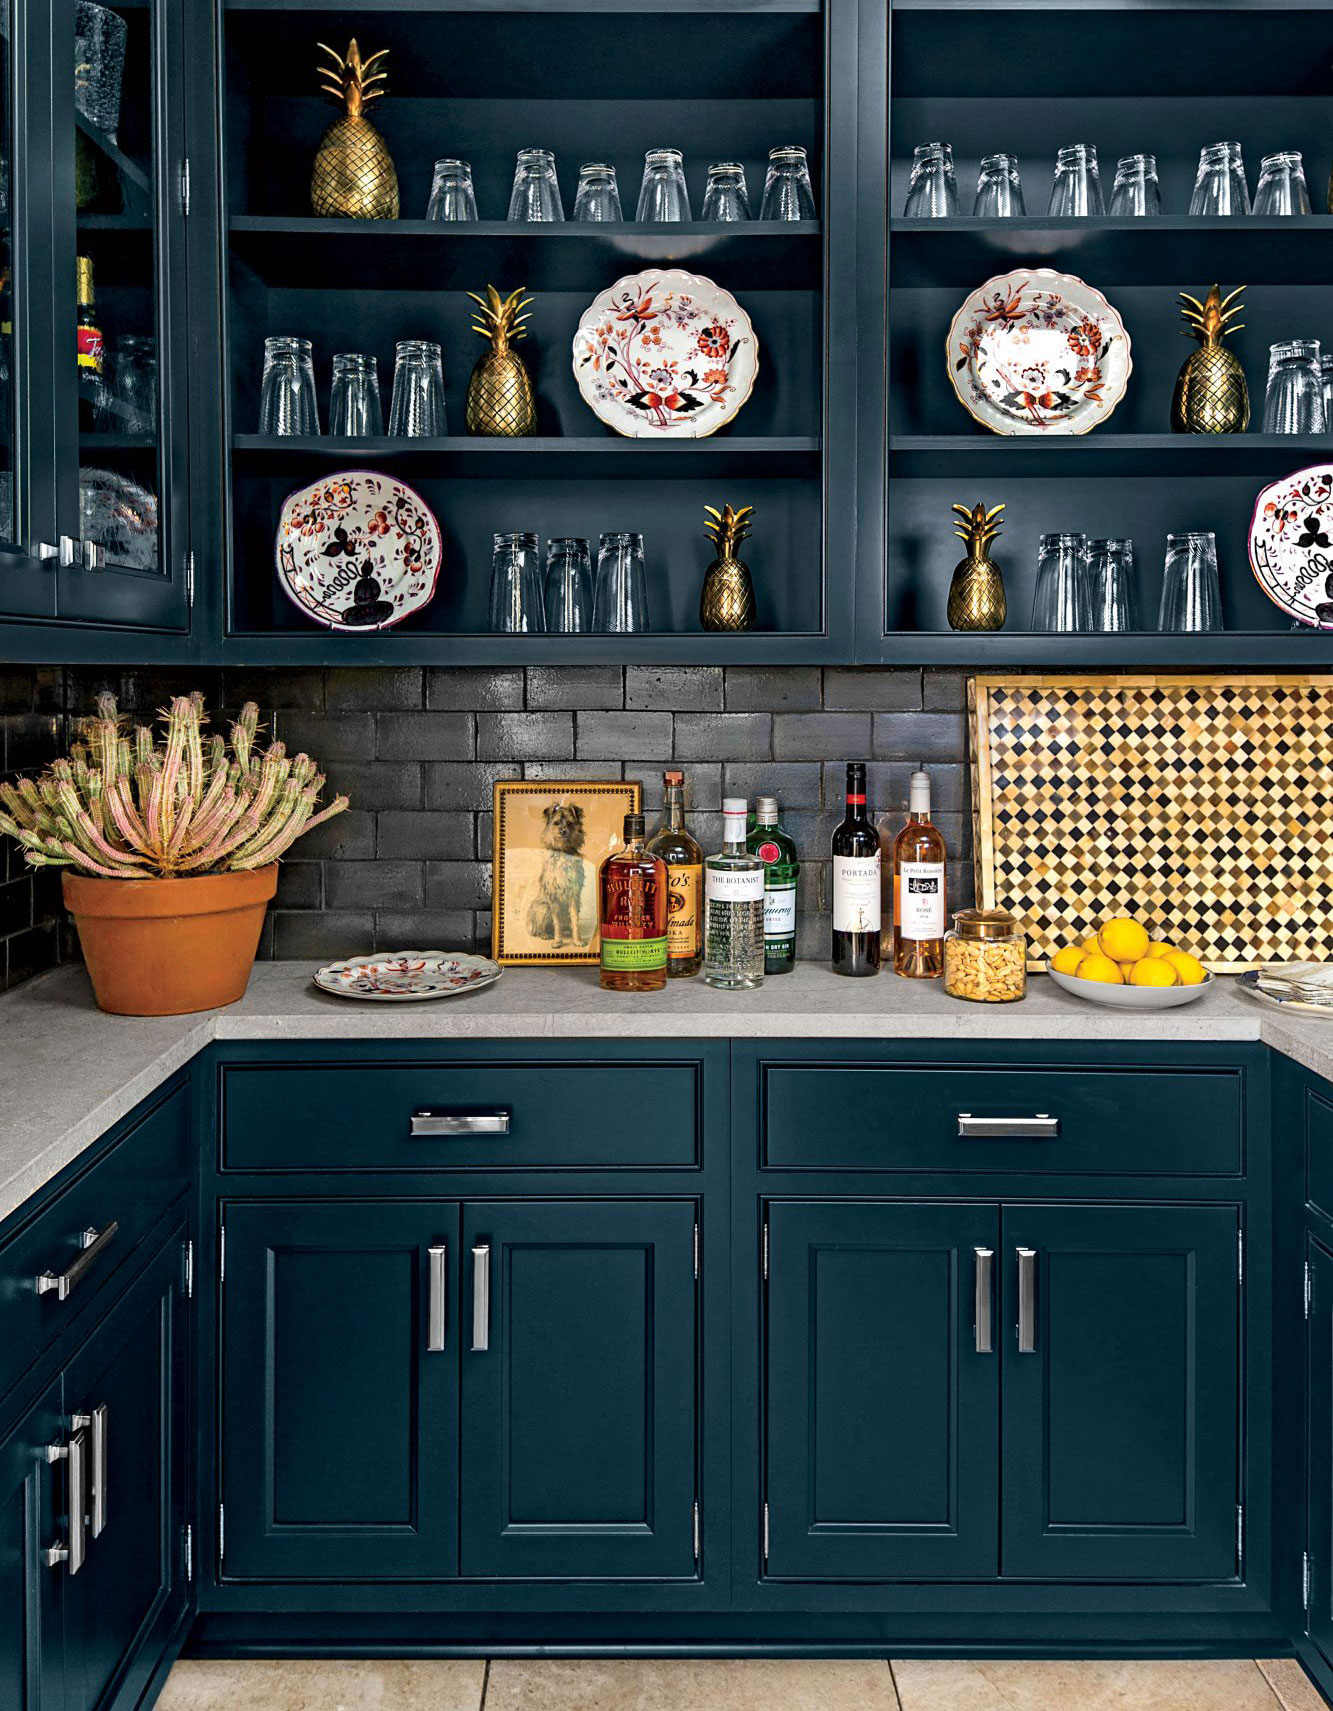 Pantry with dark blue cabinetry and walls